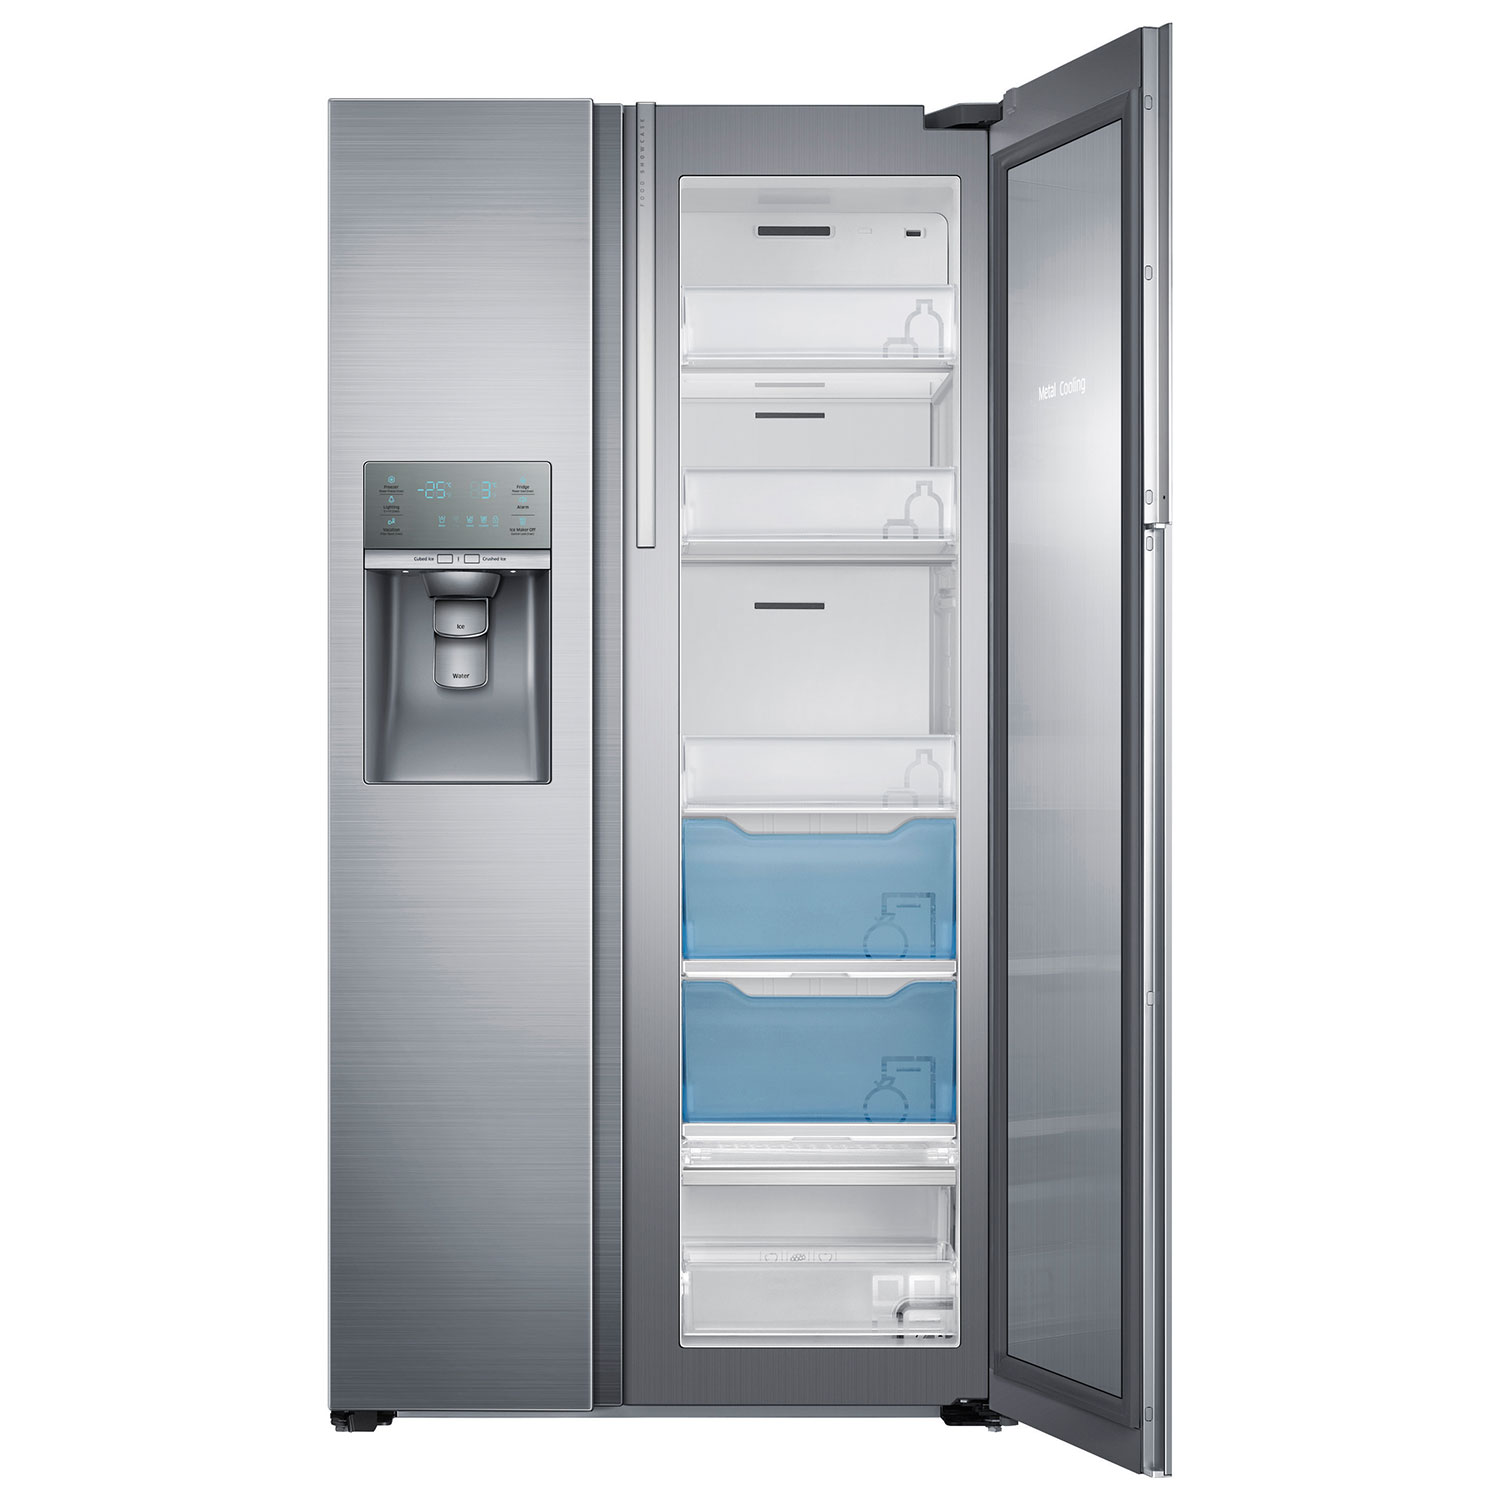 36 Refrigerators Samsung 357 215 Cu Ft Side By Side Counter Depth Refrigerator